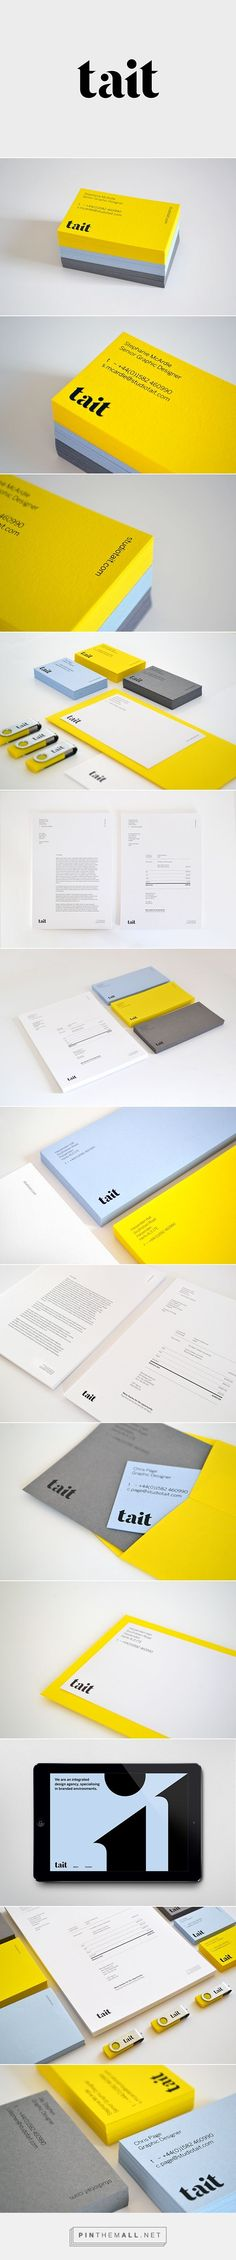 Tait on Behance - created via http://pinthemall.net?utm_content=bufferb96b0&utm_medium=social&utm_source=pinterest.com&utm_campaign=buffer | #cards #namecards | For more inspirations @faridbalian